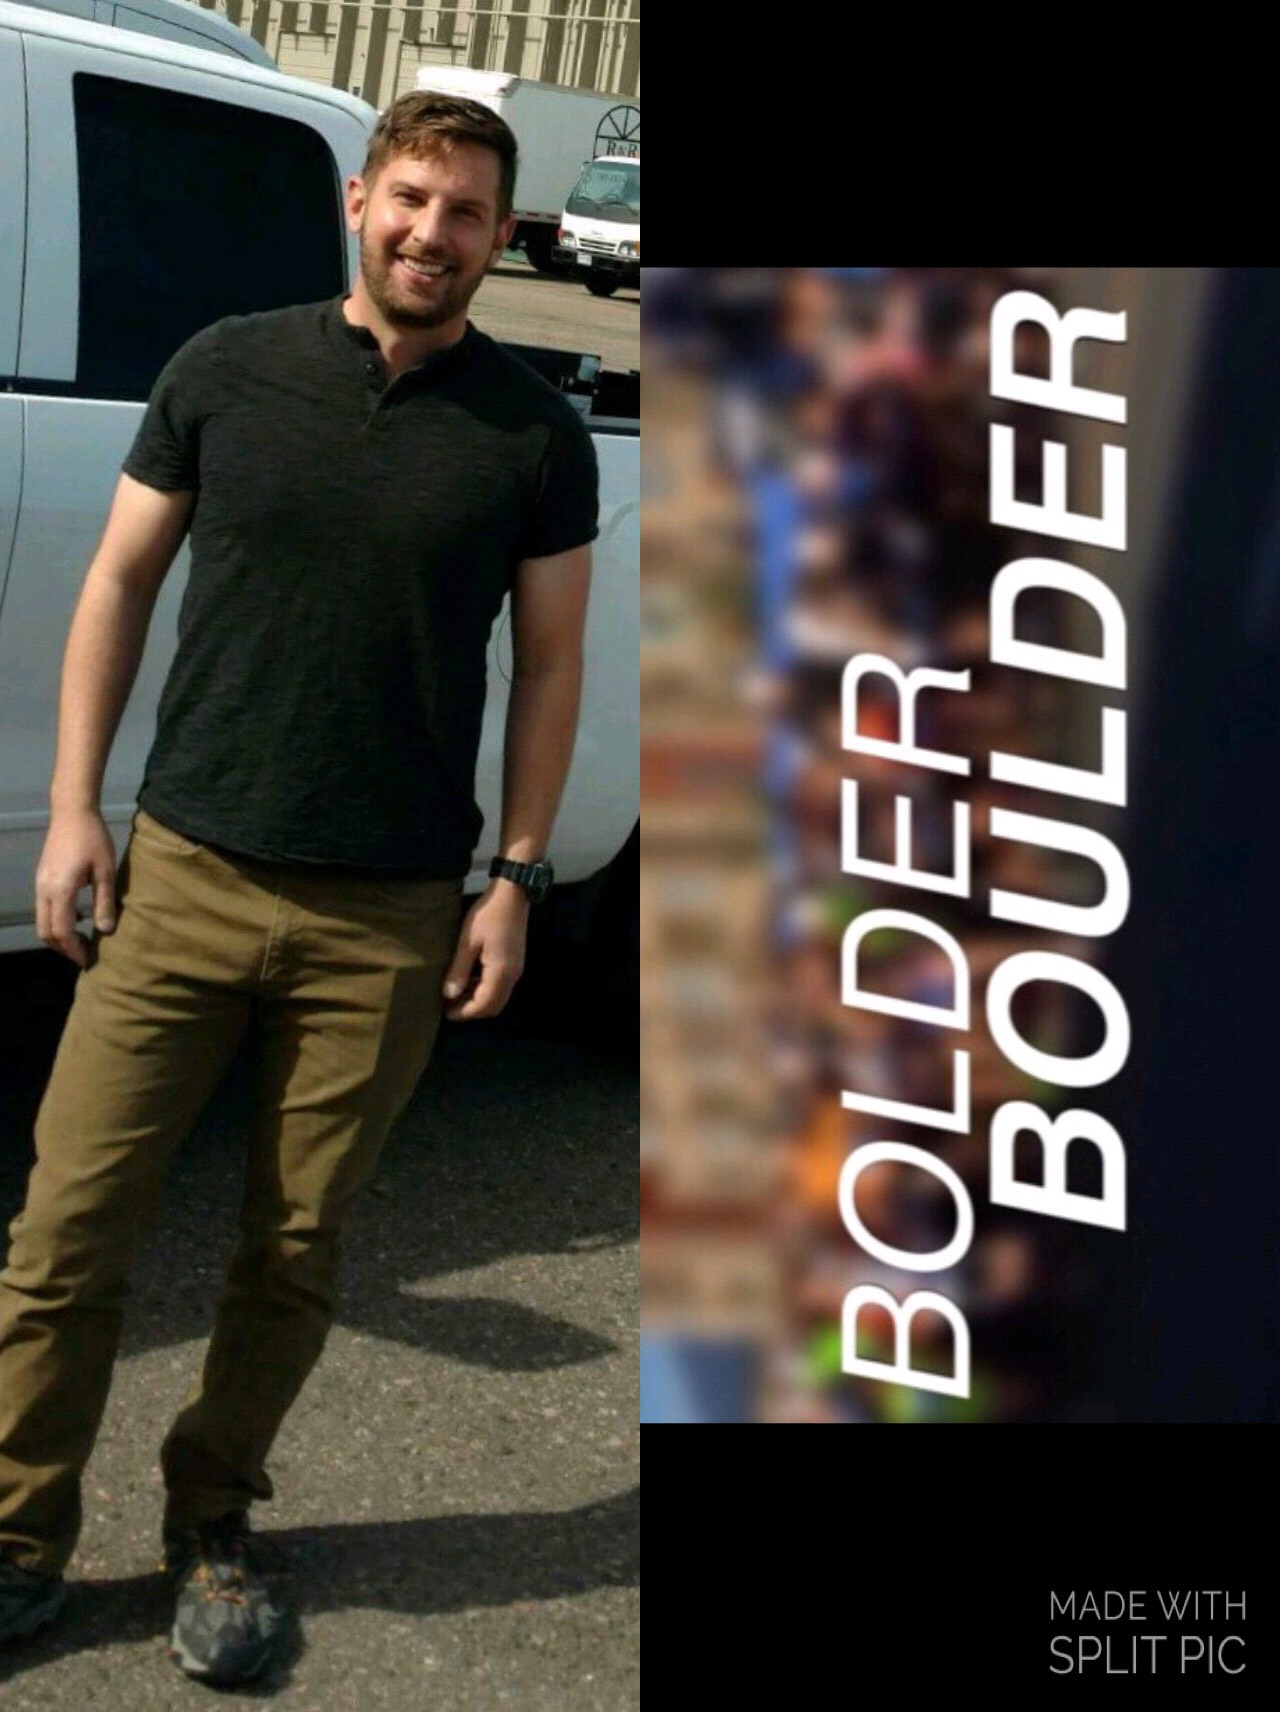 We so excited to announce that we have raised enough funds to sponsor our very own Joe from our Sports & Rec Team to run in the Bolder Boulder this year!